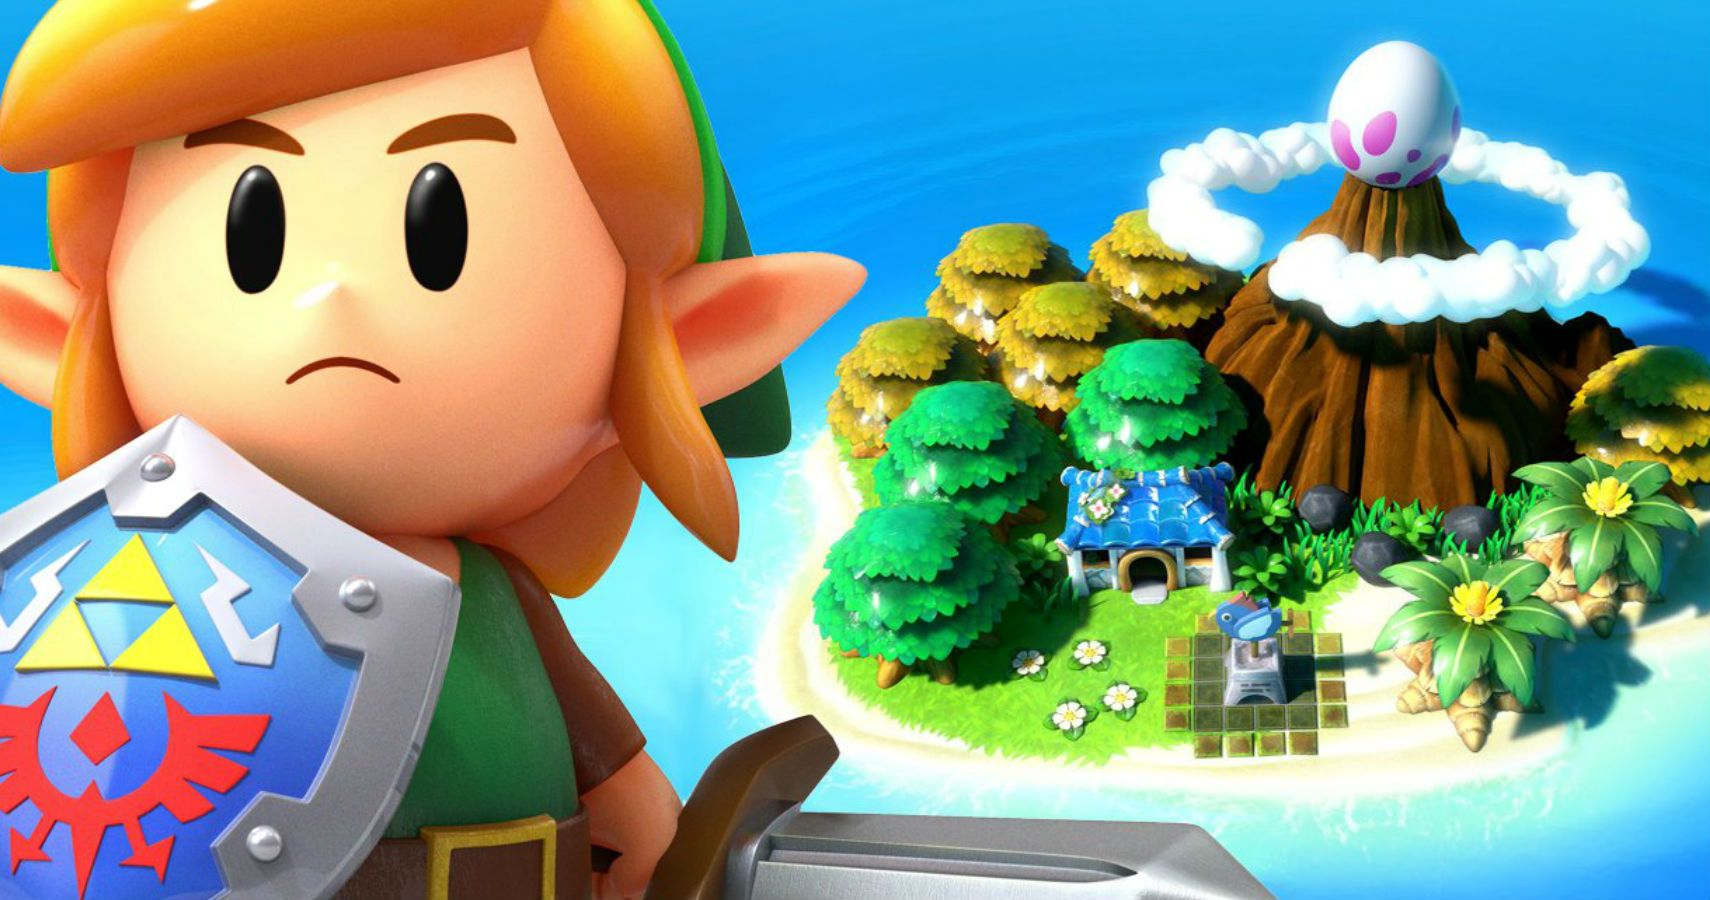 Link S Awakening S Art Style Is Incredibly Good Actually